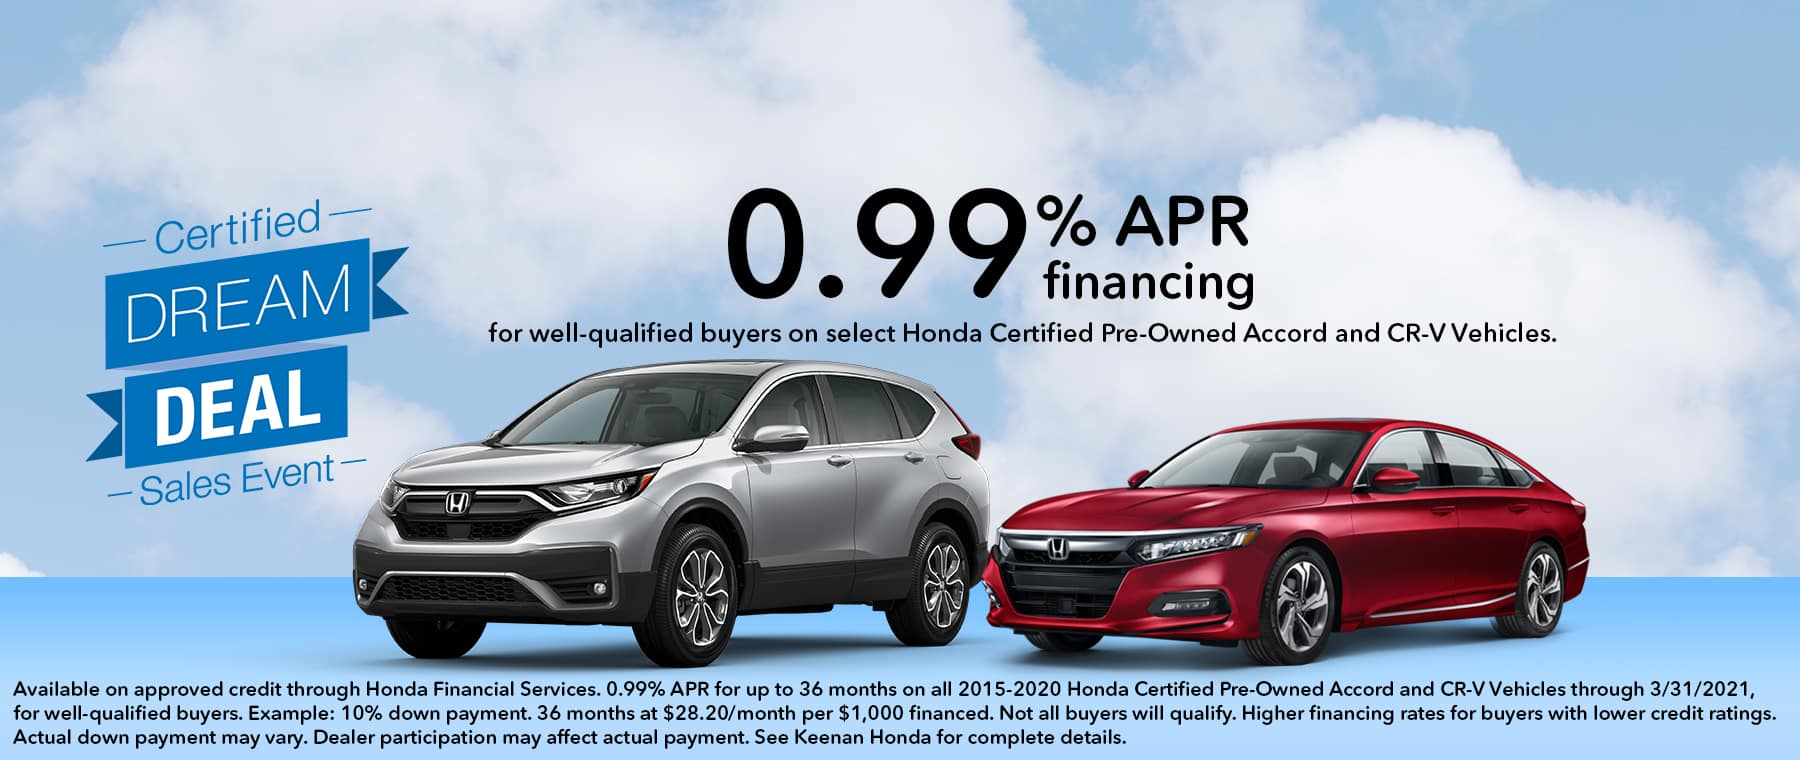 Certified Pre-Owned Honda Sales Event at Keenan Honda. Financing as low as 0.99% on select CPO Accord and CR-V Vehicles.